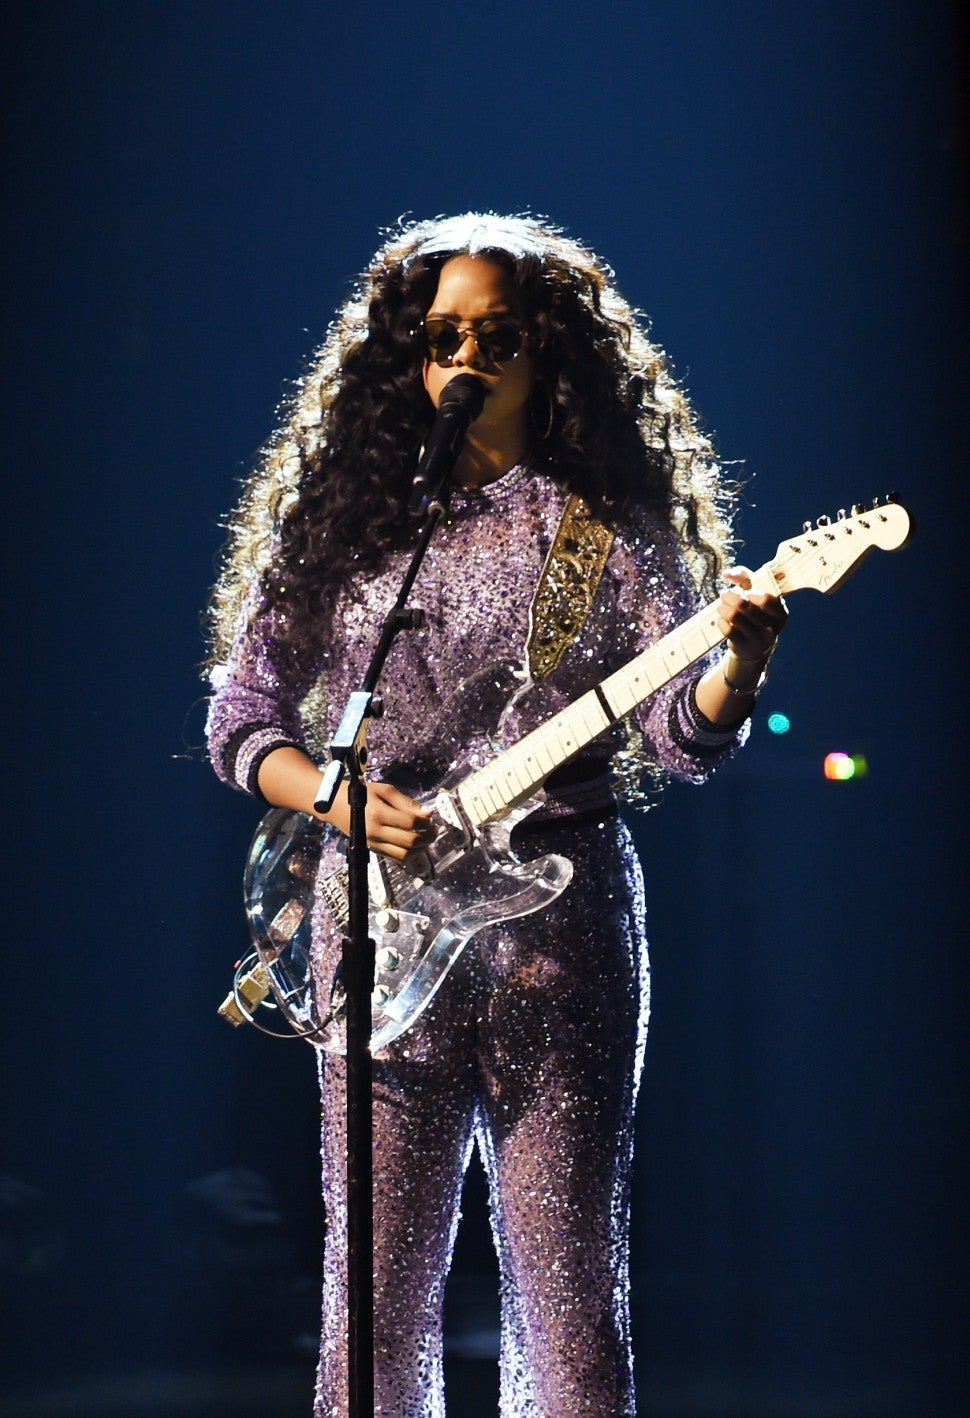 H.E.R. at 2019 grammys